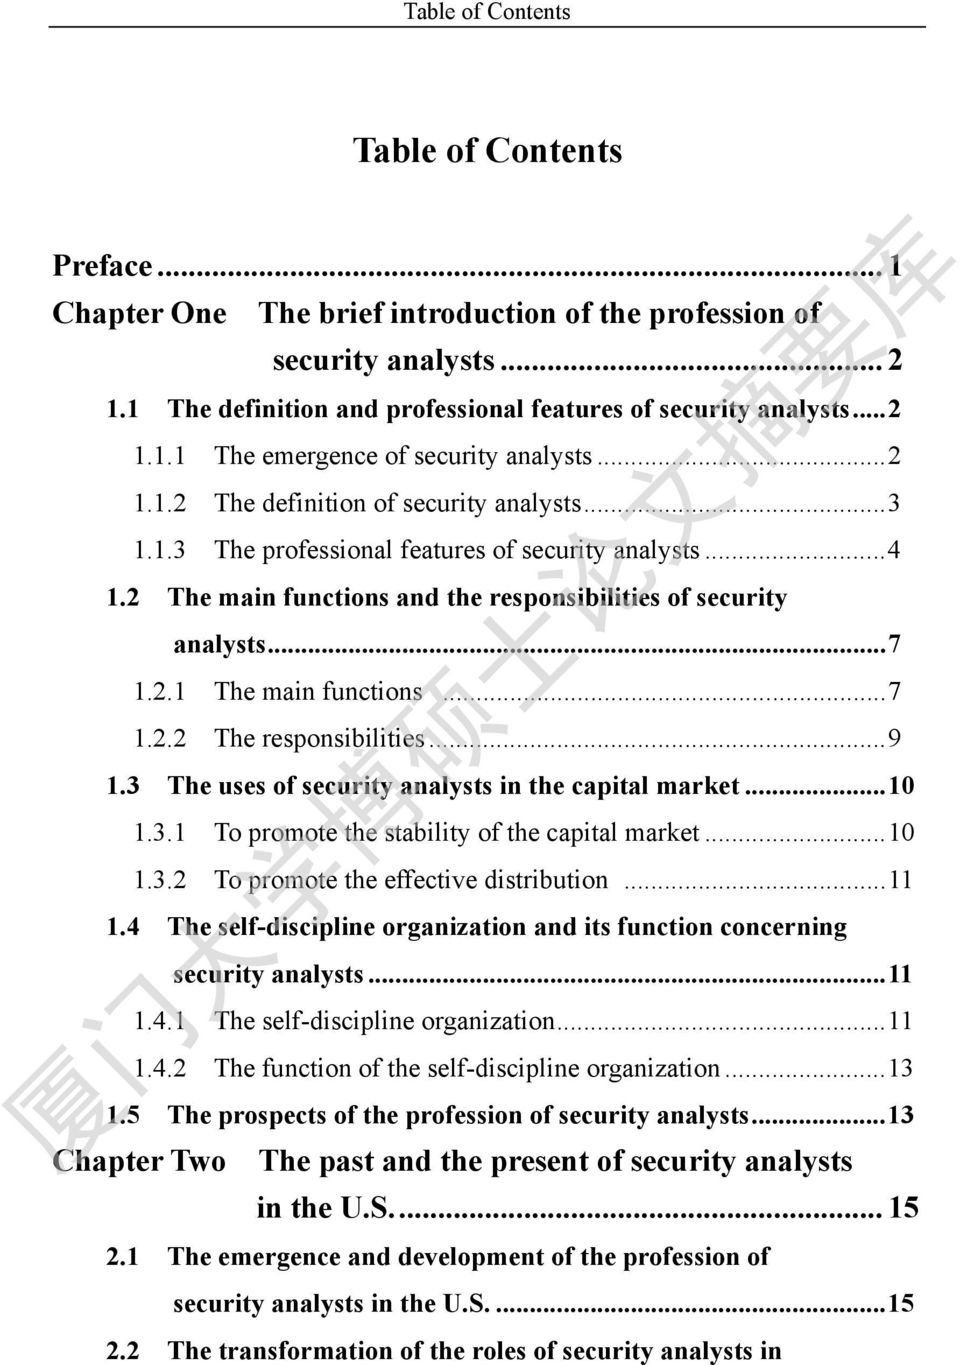 ..7 1.2.2 The responsibilities...9 1.3 The uses of security analysts in the capital market...10 1.3.1 To promote the stability of the capital market...10 1.3.2 To promote the effective distribution.